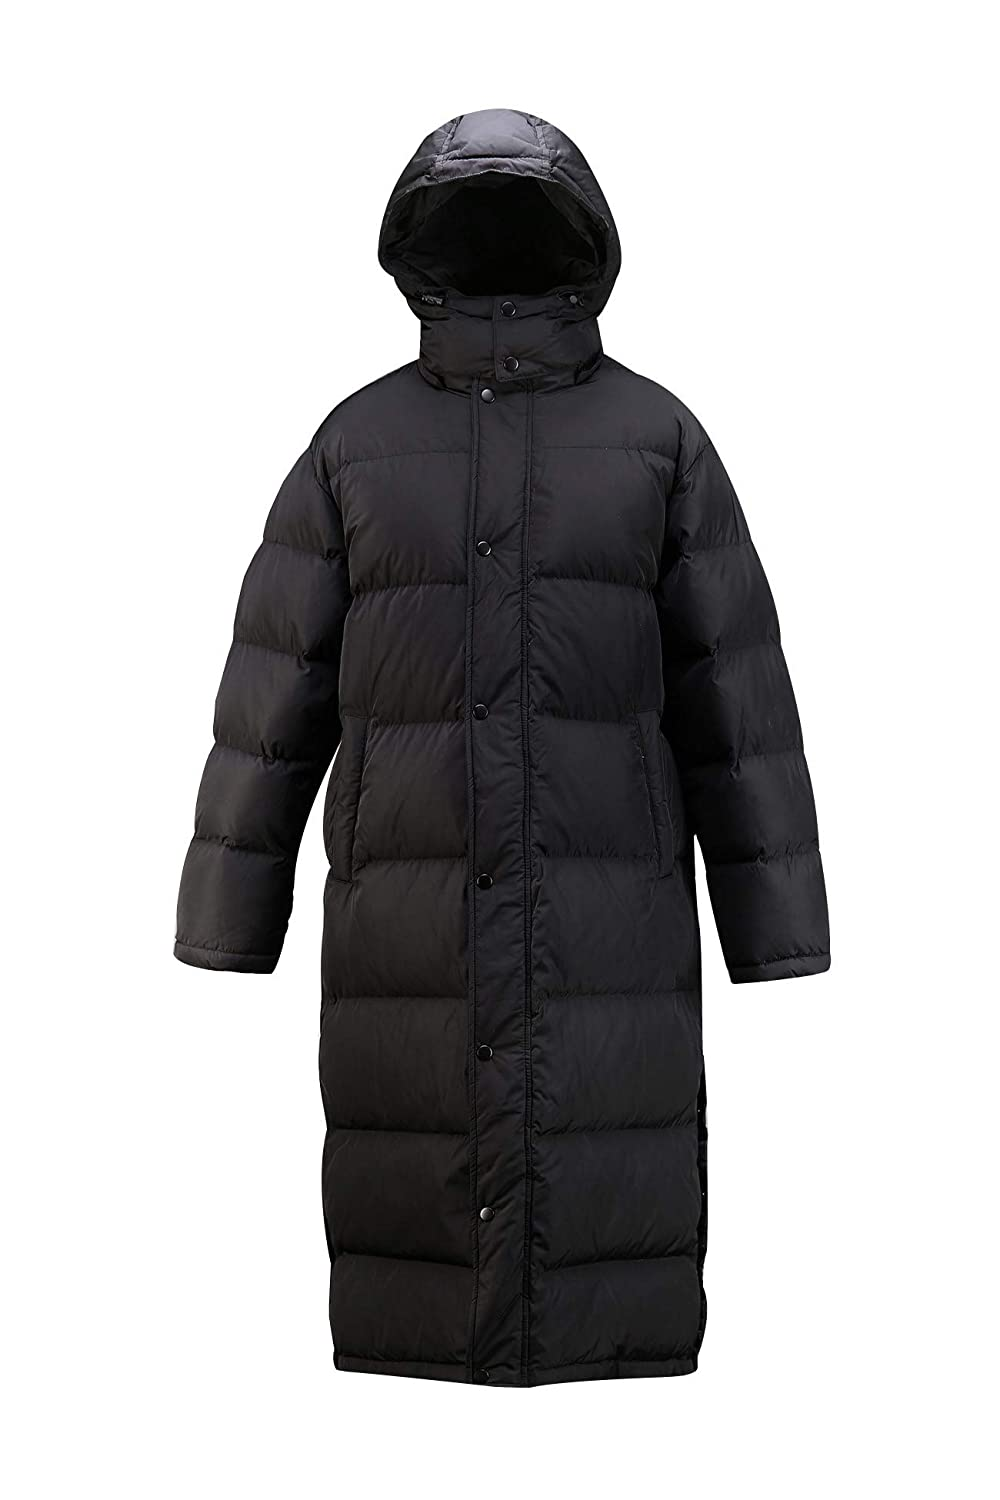 ByTheR Mens Detachable Hood Side Button Open Dual Covering Padded Long Jacket P000CKZK-$P